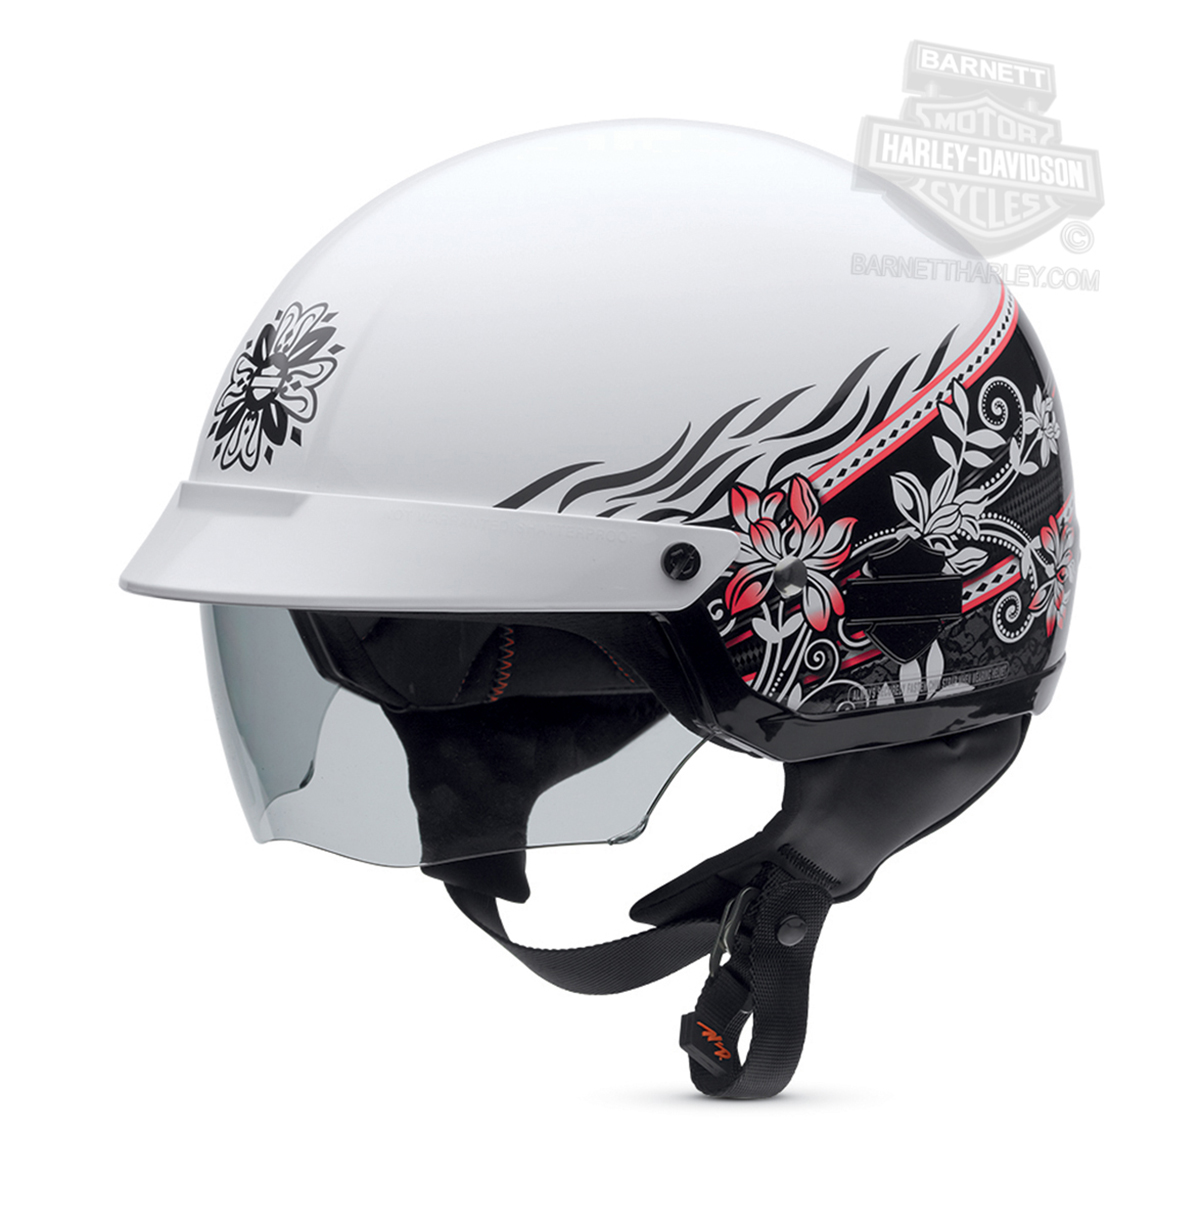 VW HarleyDavidson Womens Cascade Flower Graphics With - Helmet decals motorcycle womens